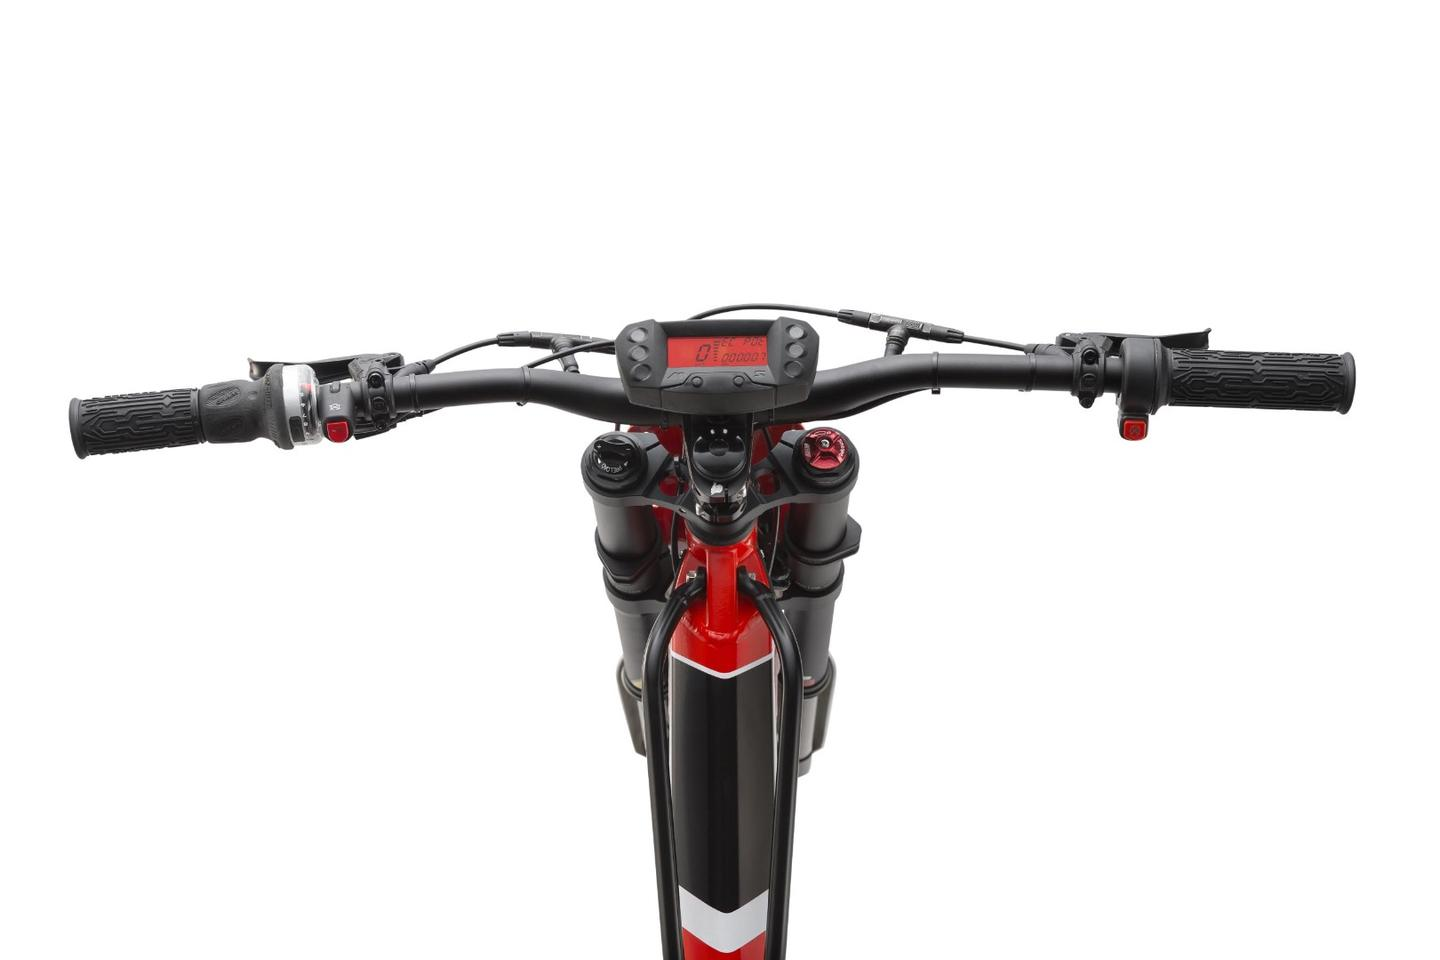 The Brinco includes an LED computer